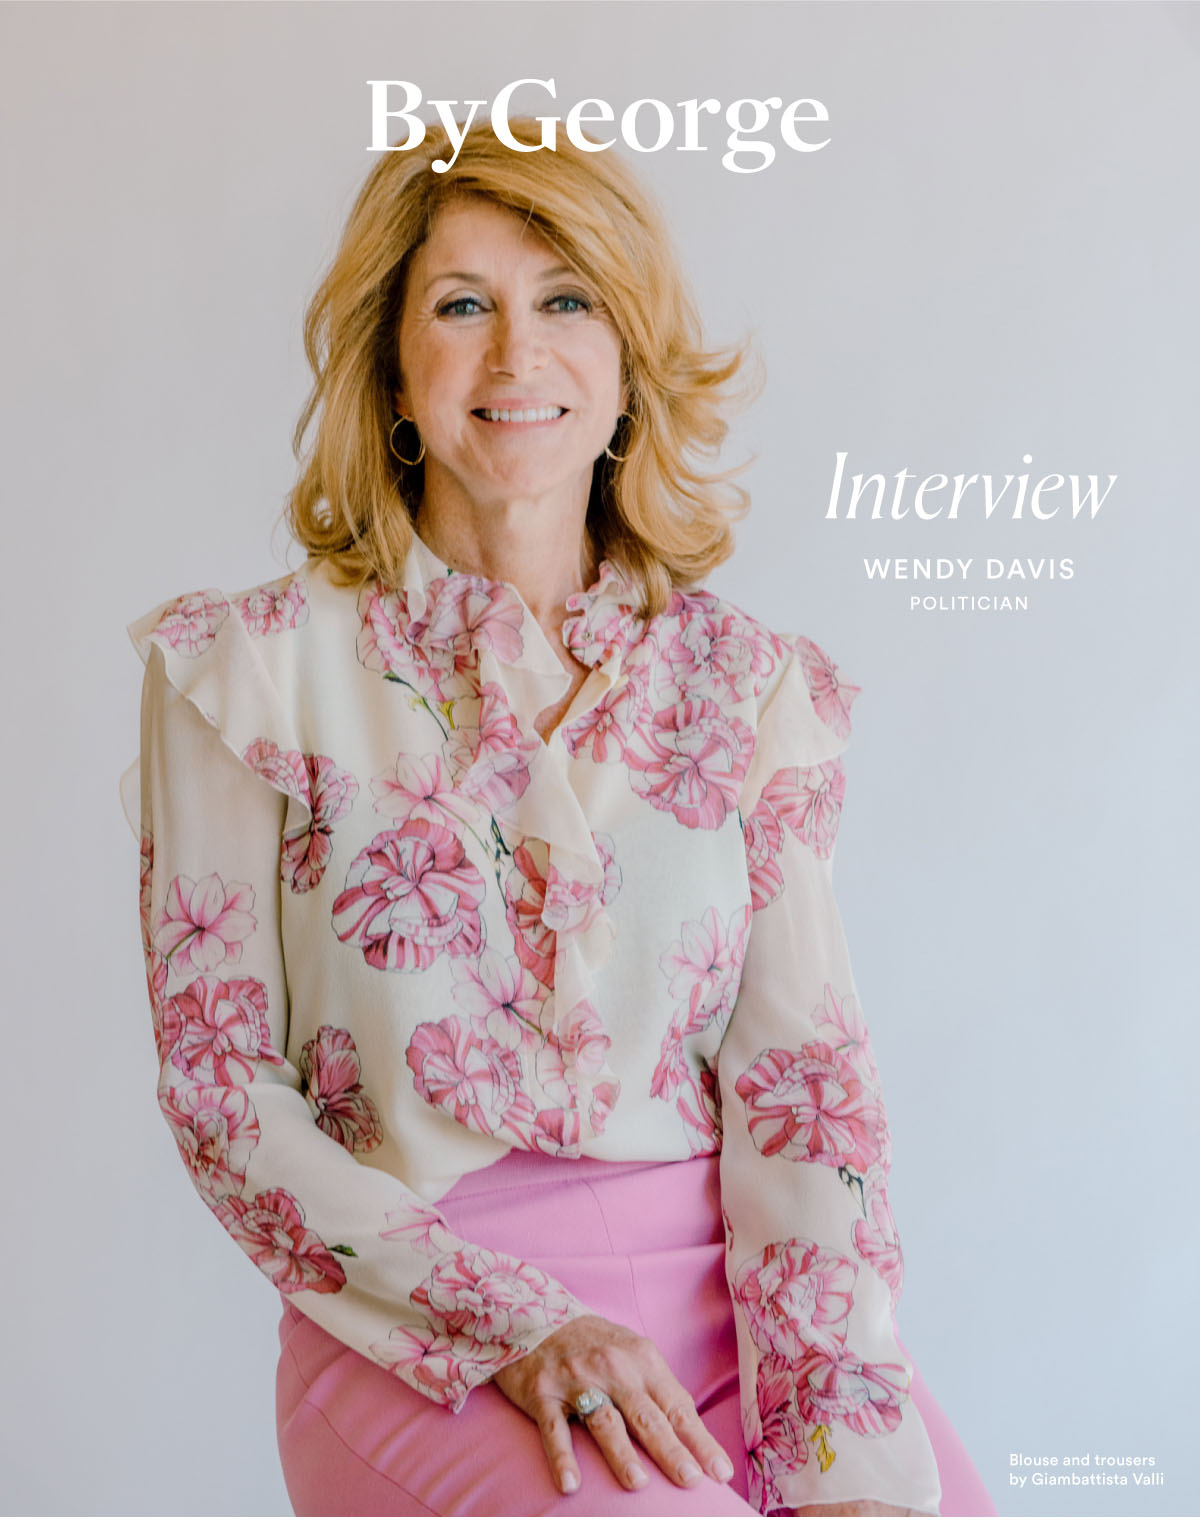 041019_Interview_WendyDavis1.jpg